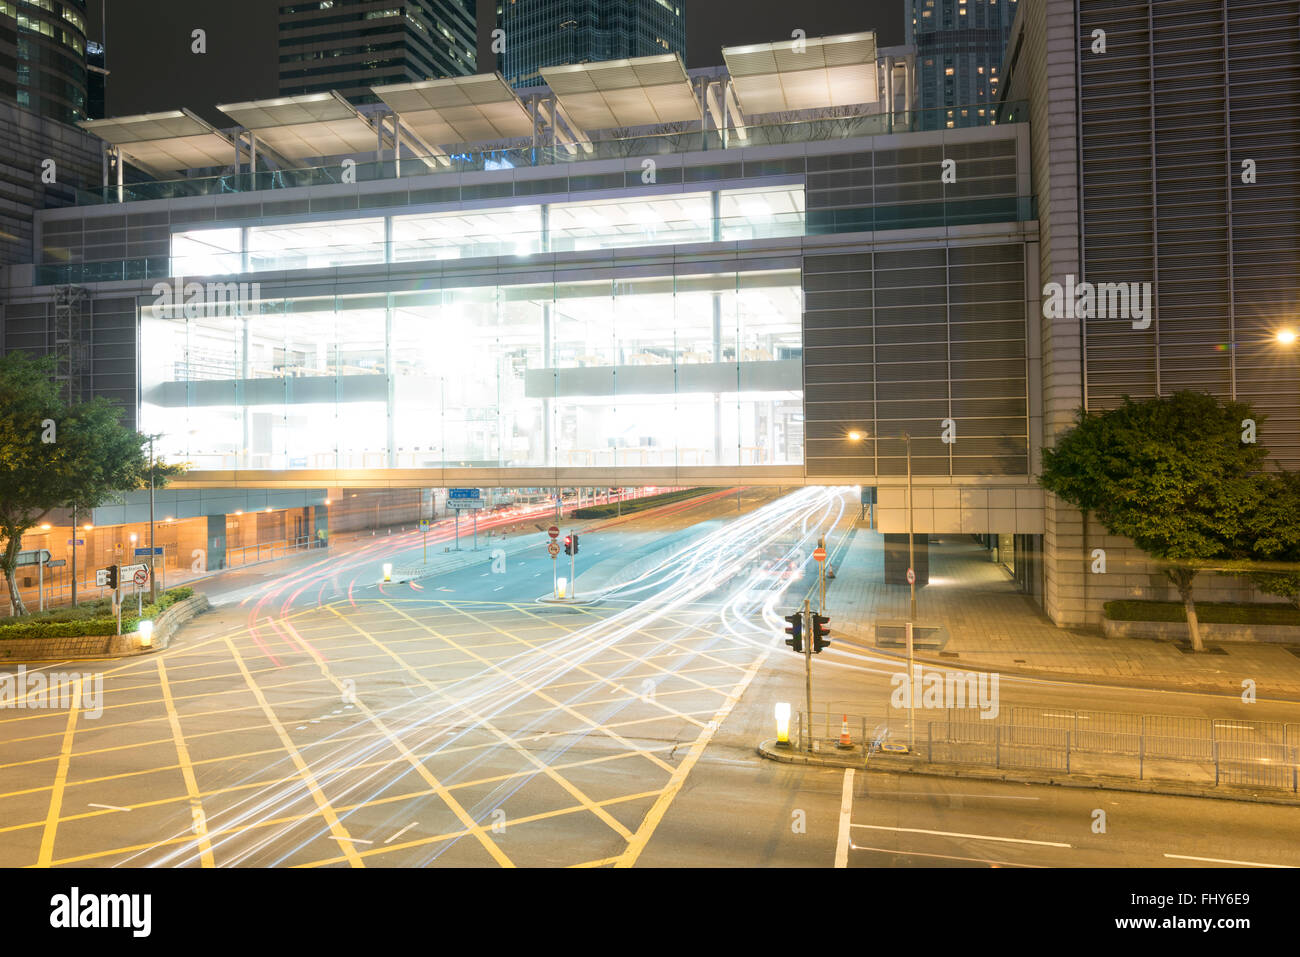 HONG KONG, CHINA - 25 FEB 2016: Apple Store in International Financial Center, Hong Kong. Stock Photo